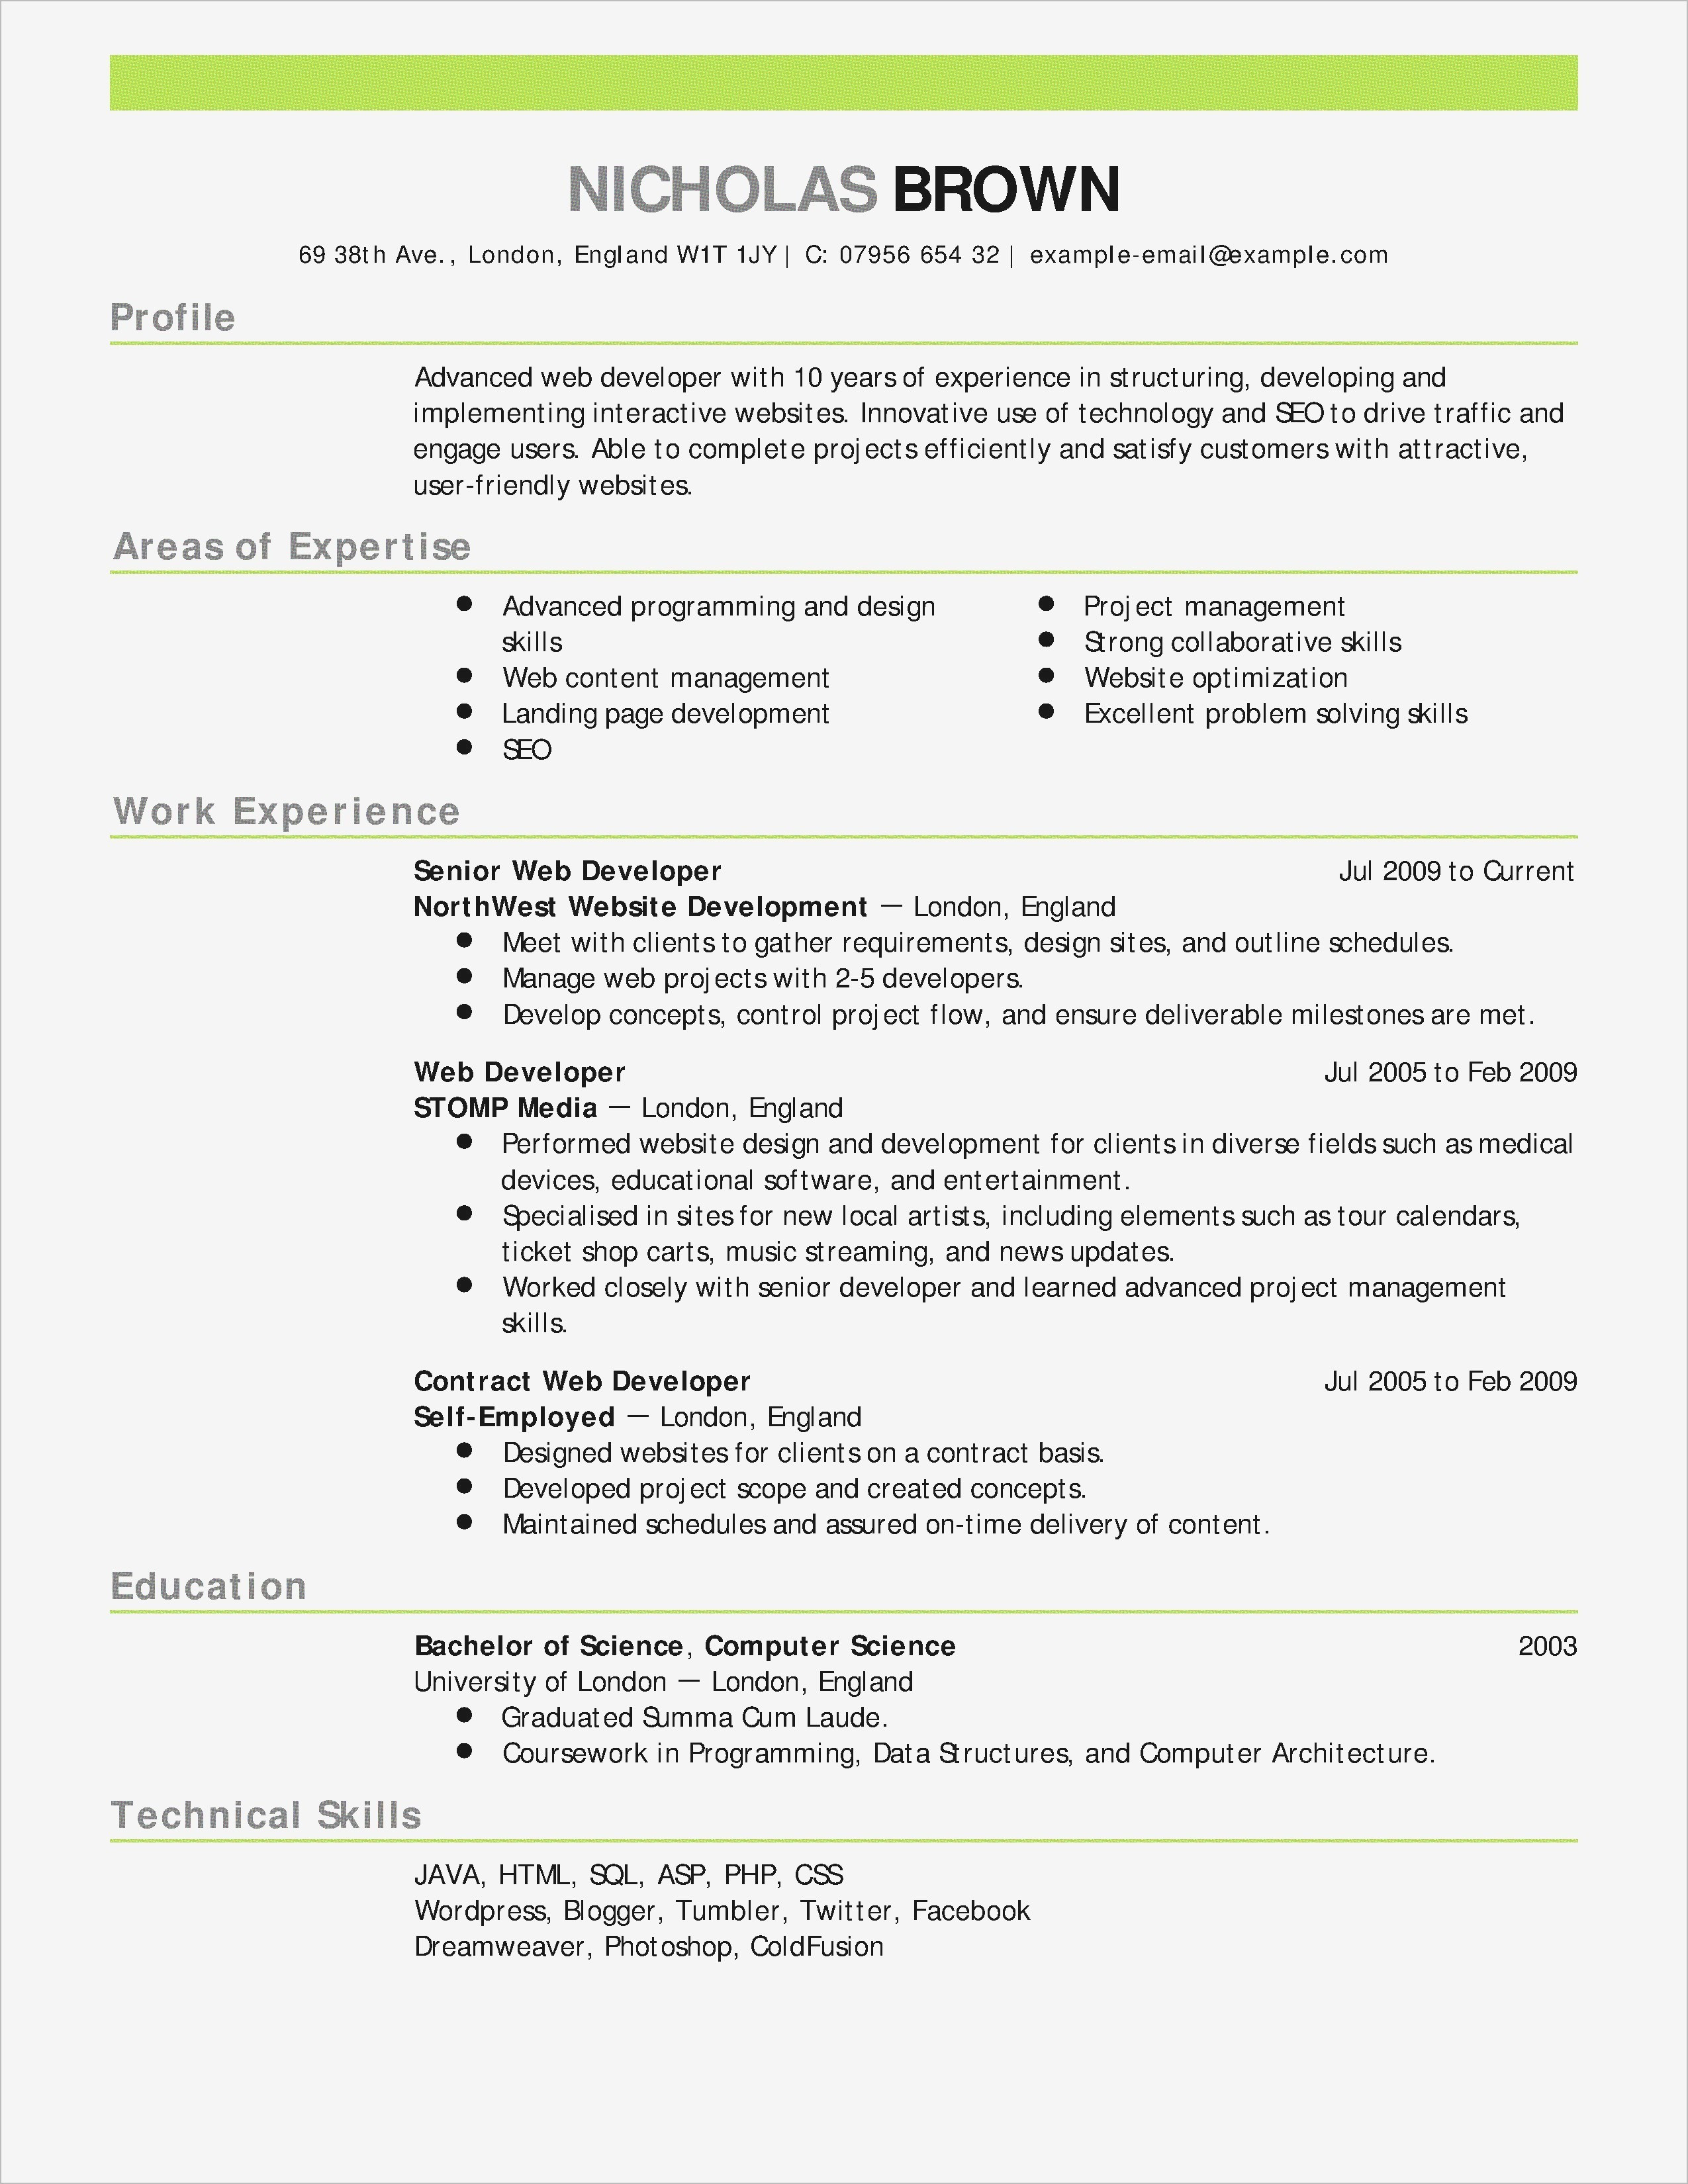 Free Psd Resume Templates - Elegant Free Resume Template for Word